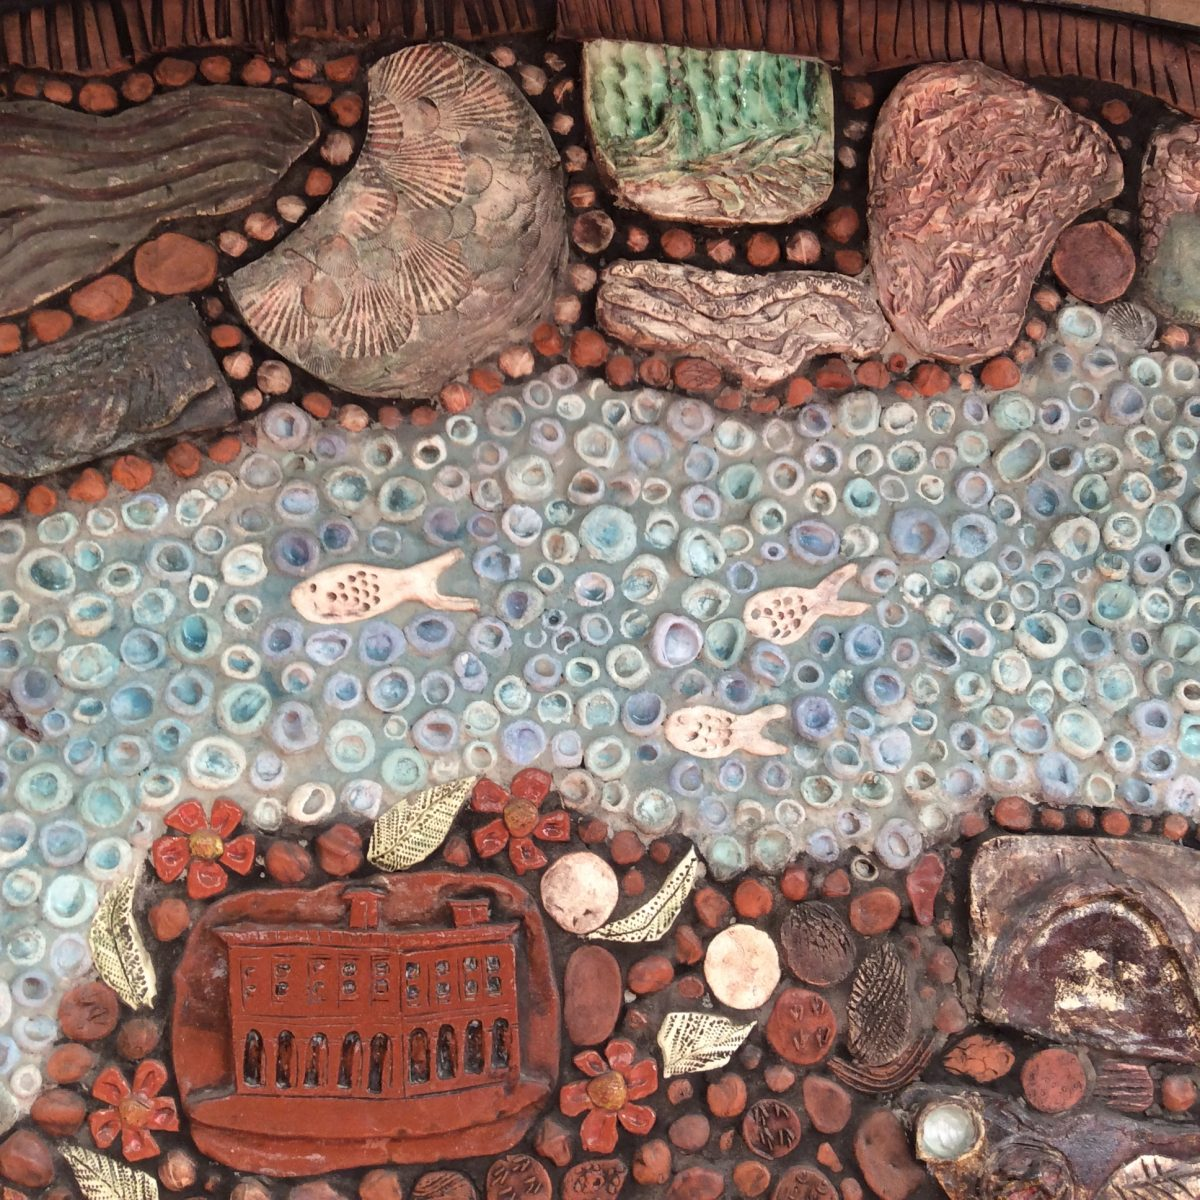 Details showing shellfish in mural